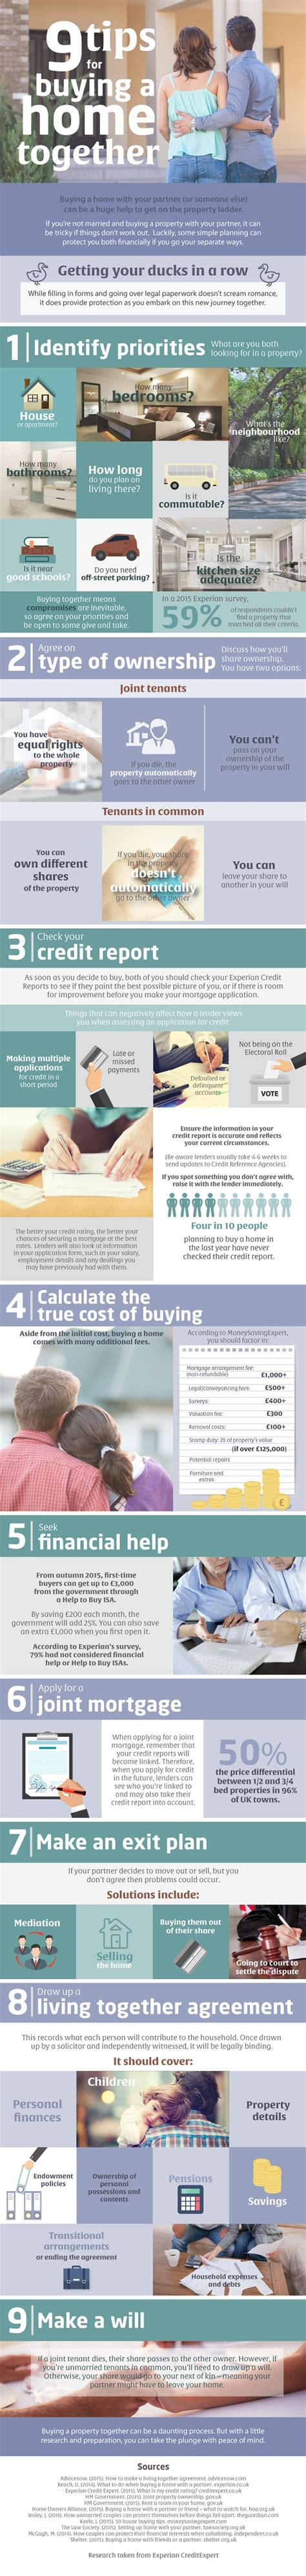 buying a house with partner infographic important guidelines when buying a house with your partner personal